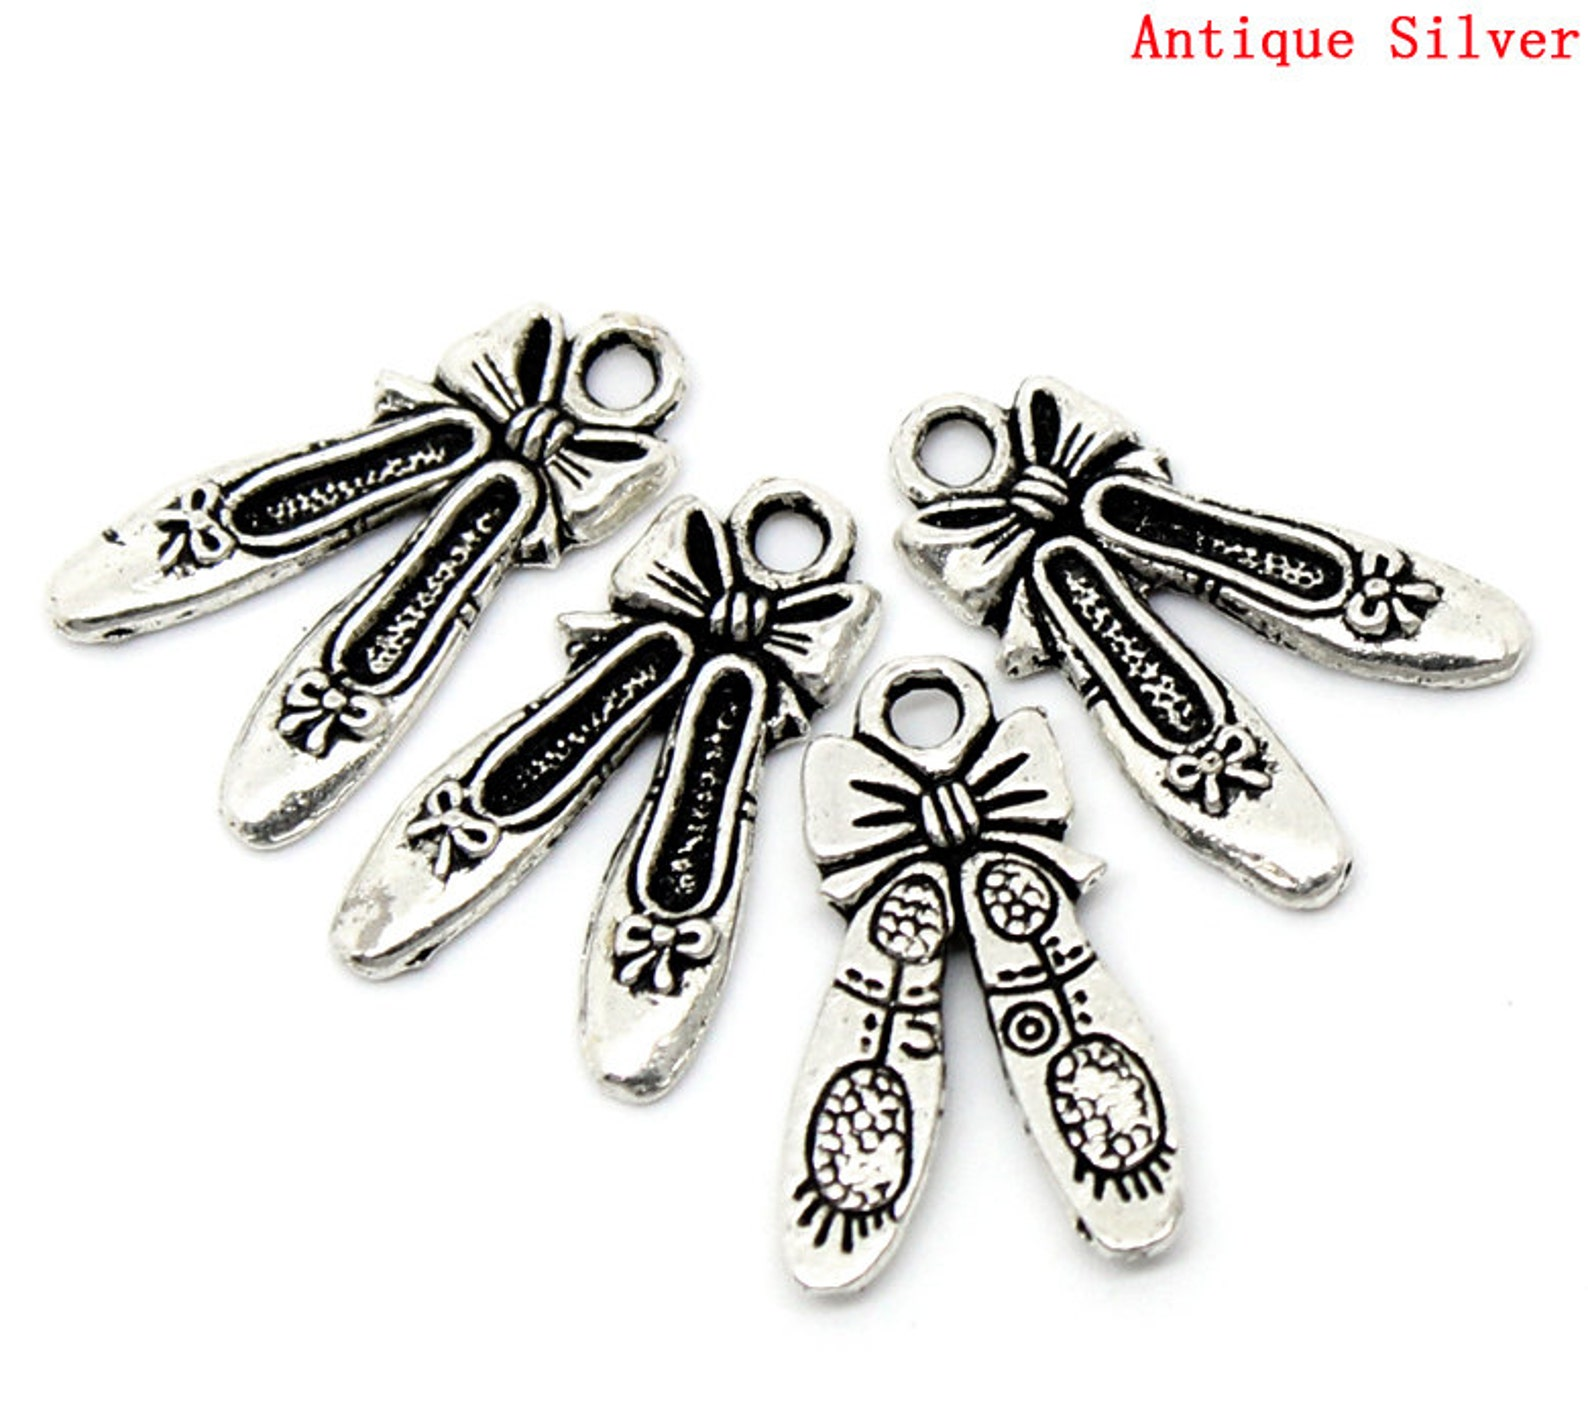 5 pieces antique silver ballet shoes charms